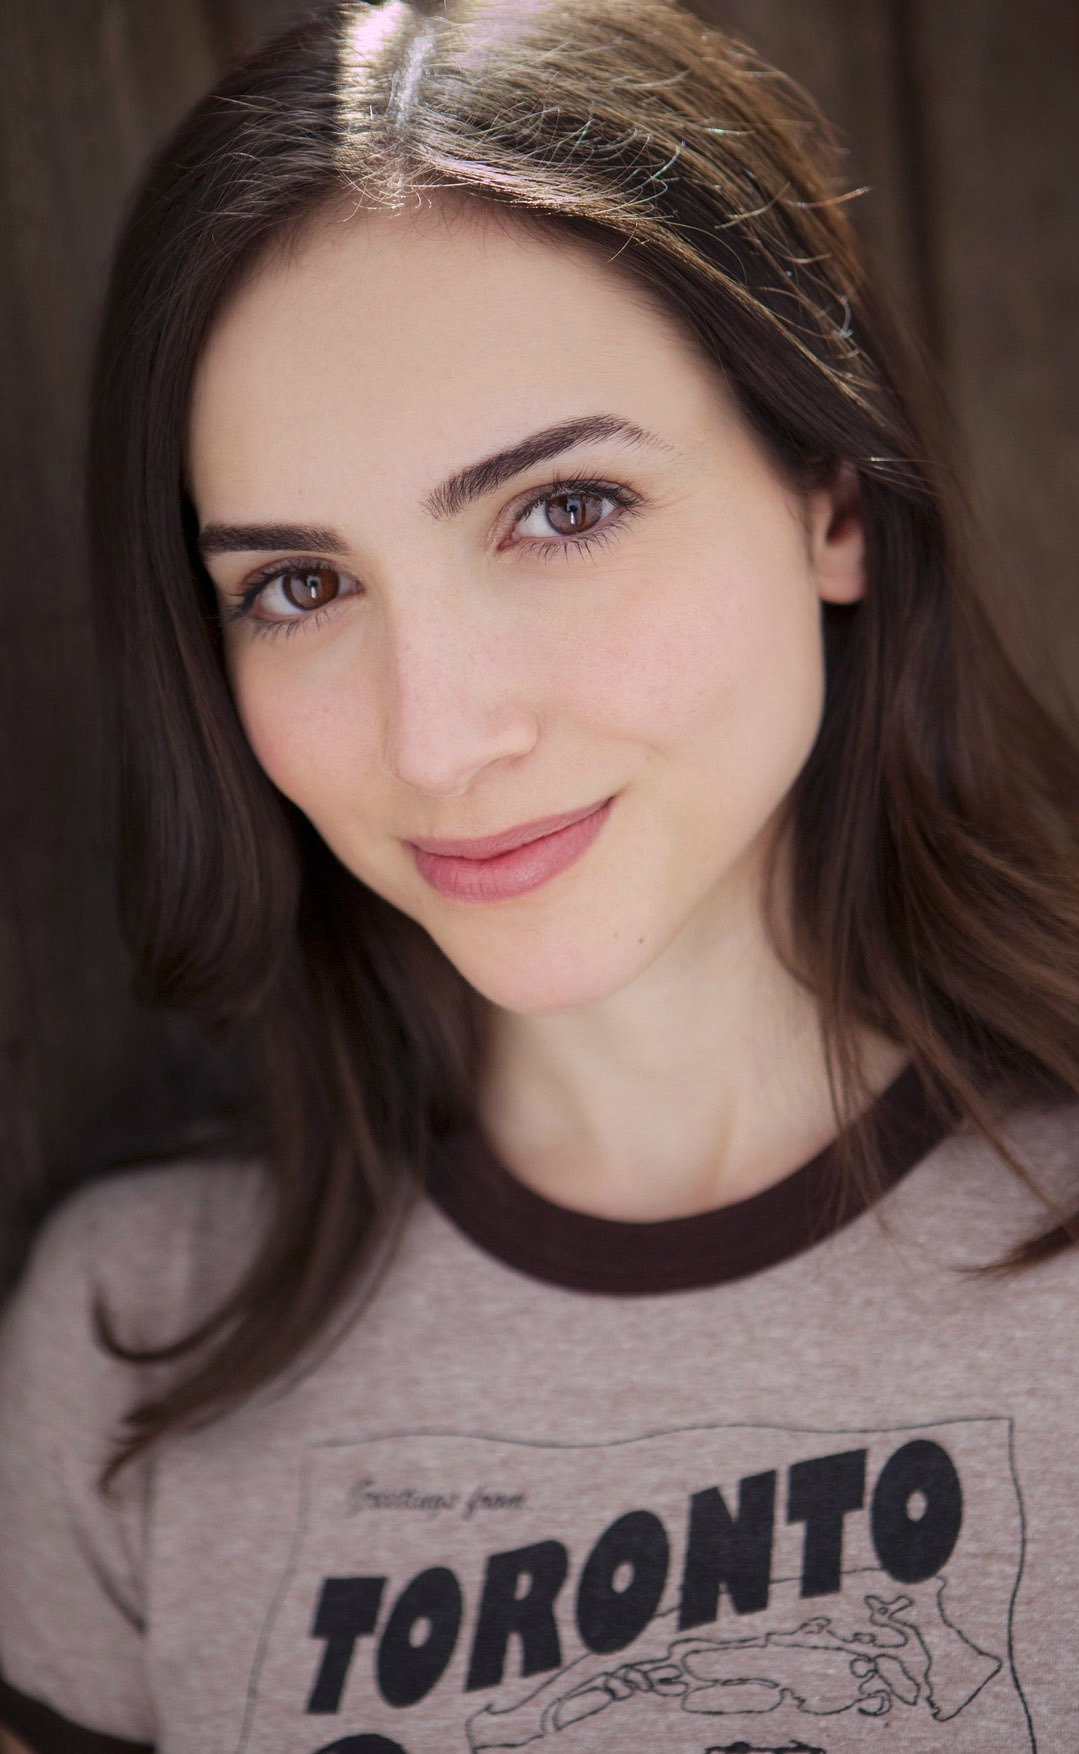 Eden Riegel biographie